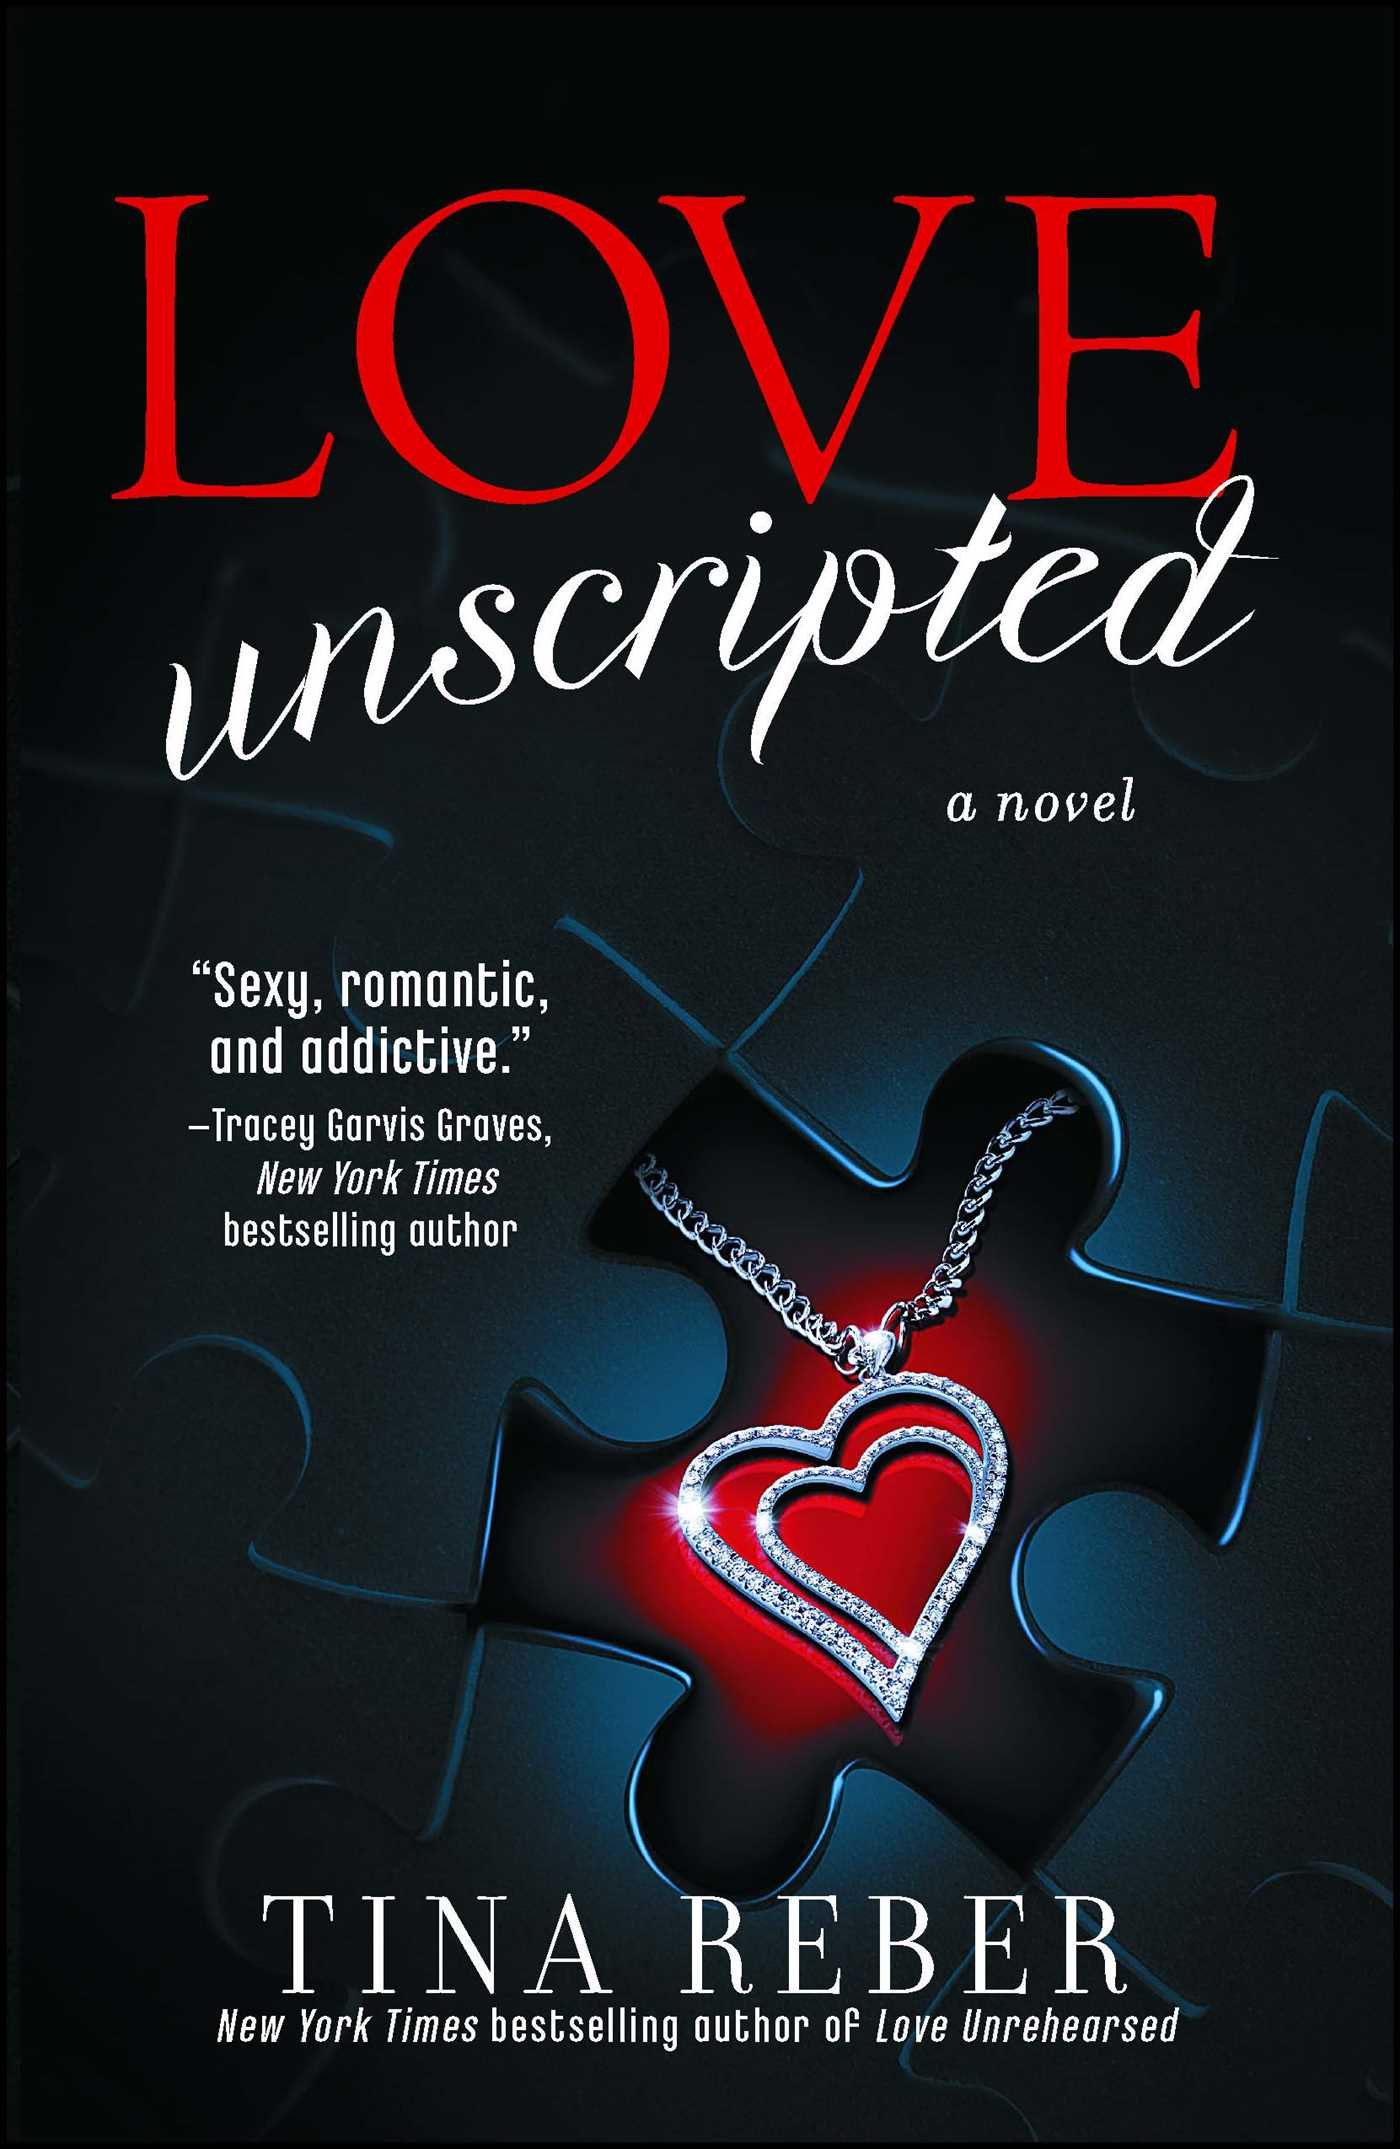 Love-unscripted-9781476718682_hr